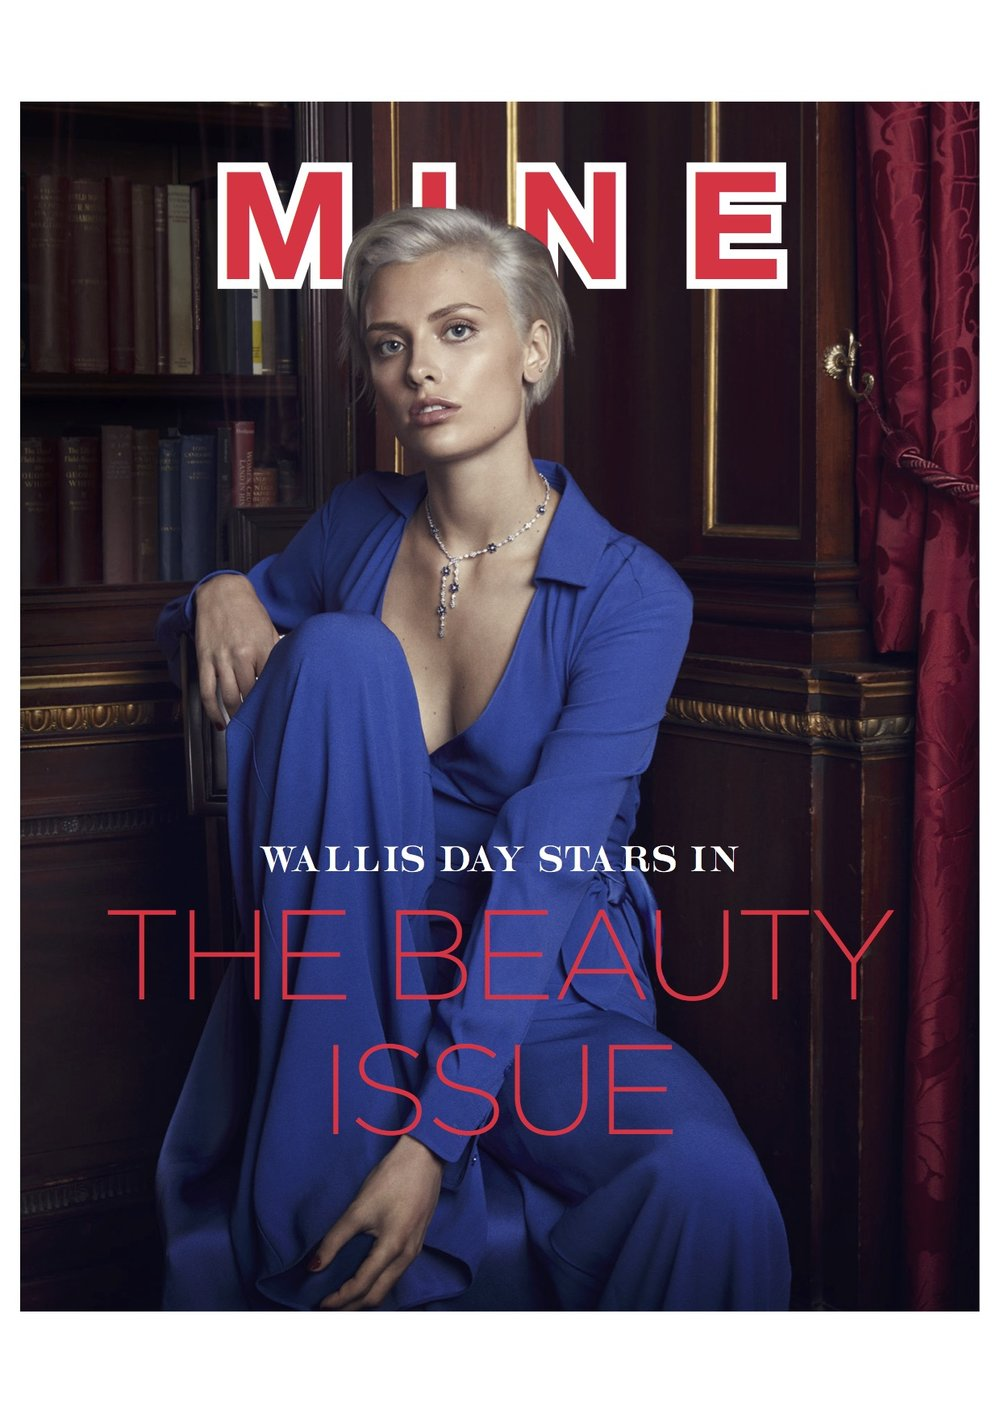 MINE Magazine_Wallis Day_Cover.jpg